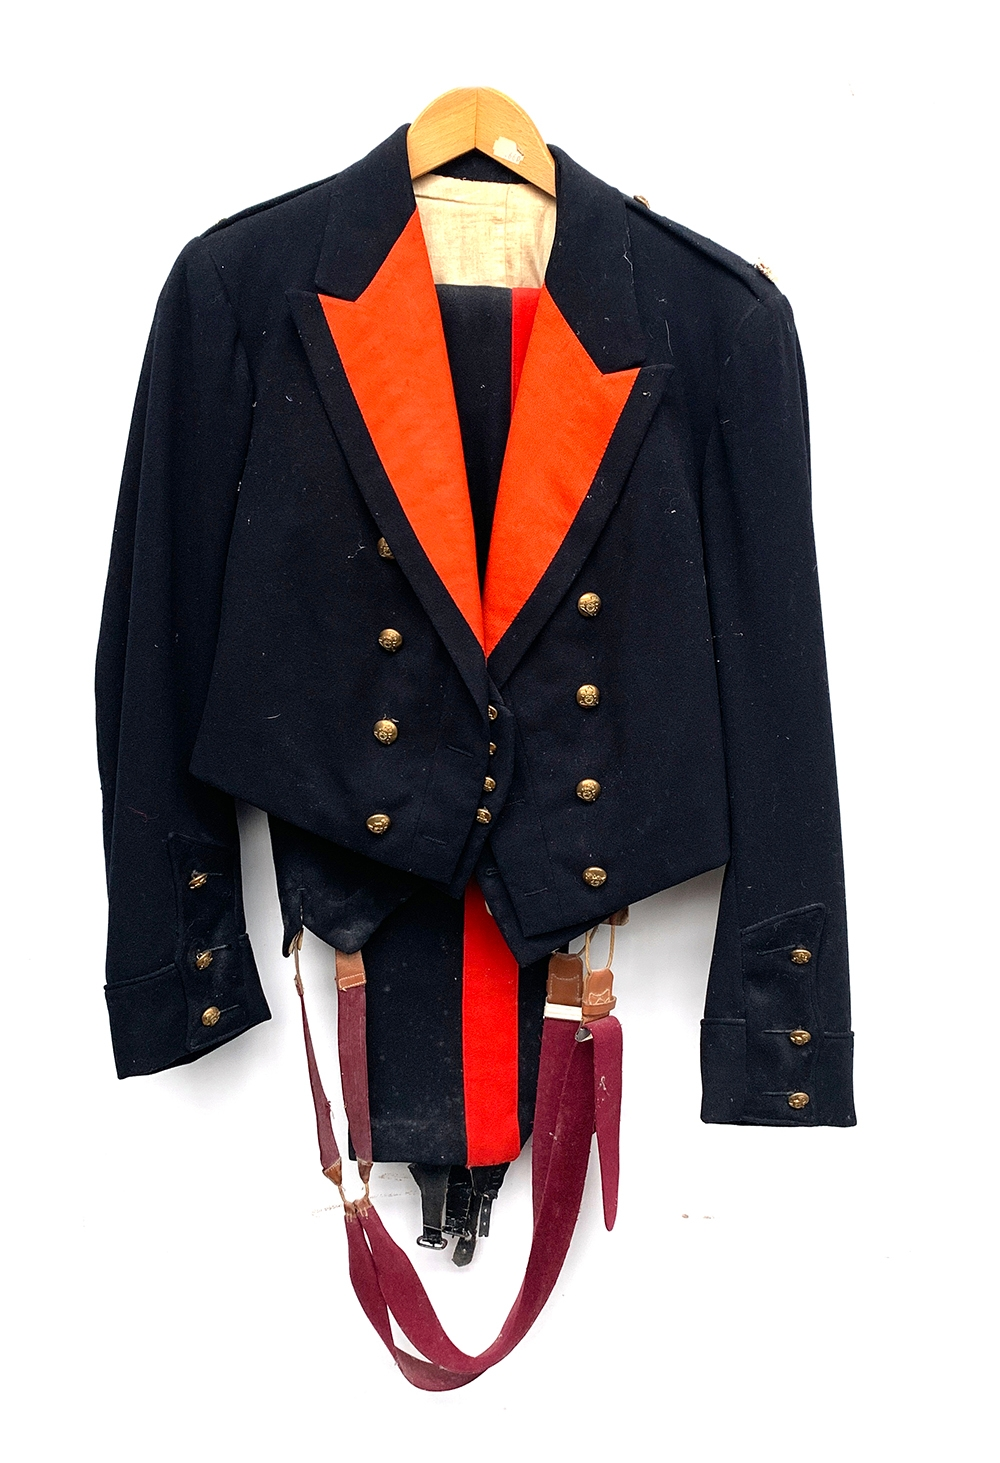 Royal Artillery mess dress - three pieces with buttons, together with a second pair of trousers